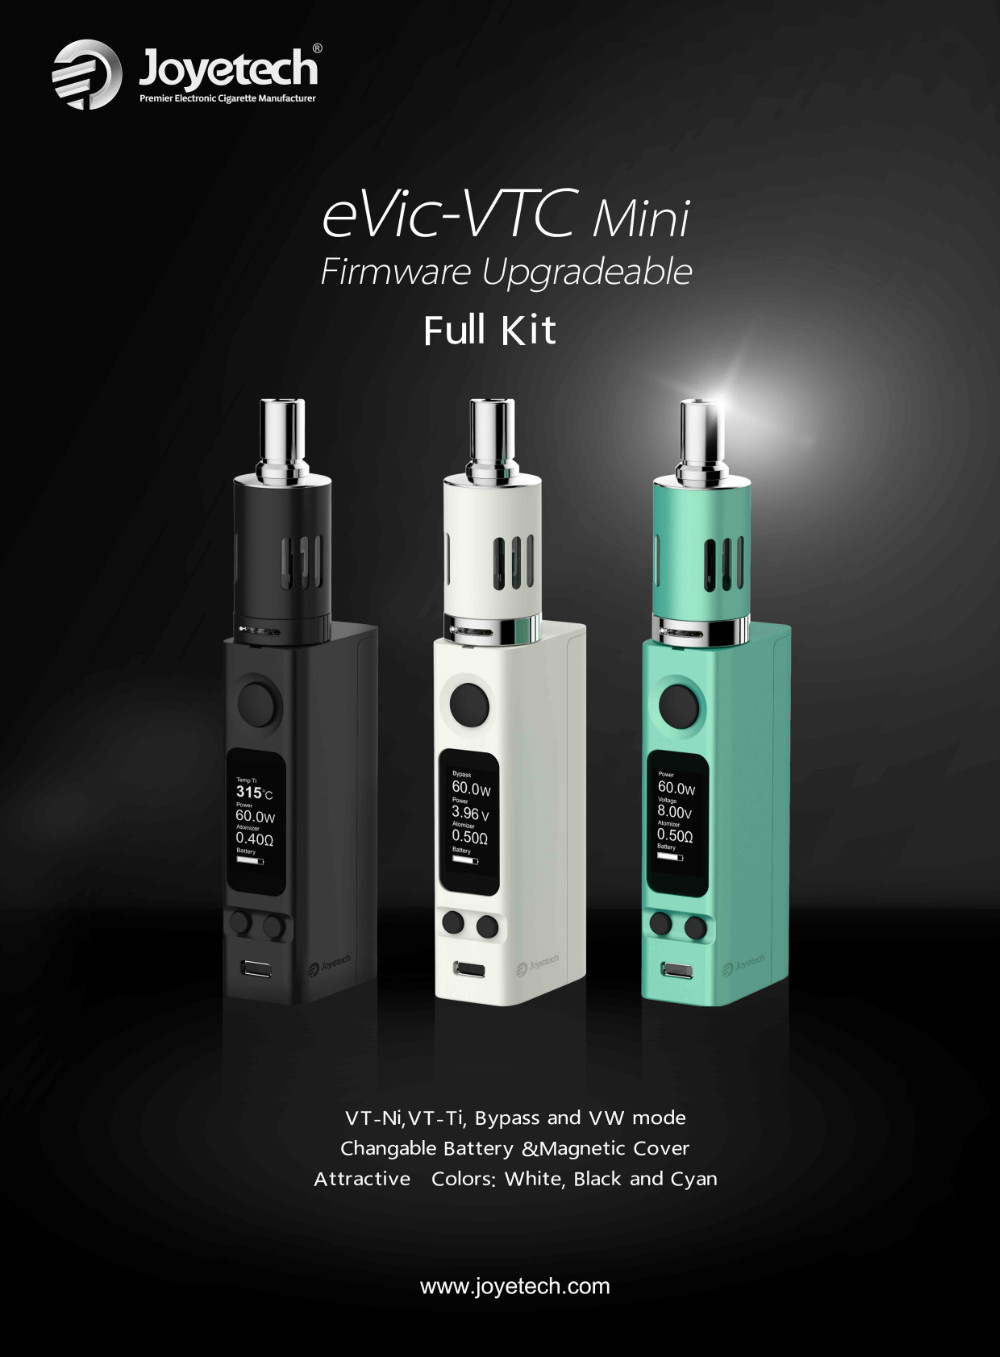 Coming soon : Joyetech eVic VTC Mini 60W Evic-v11